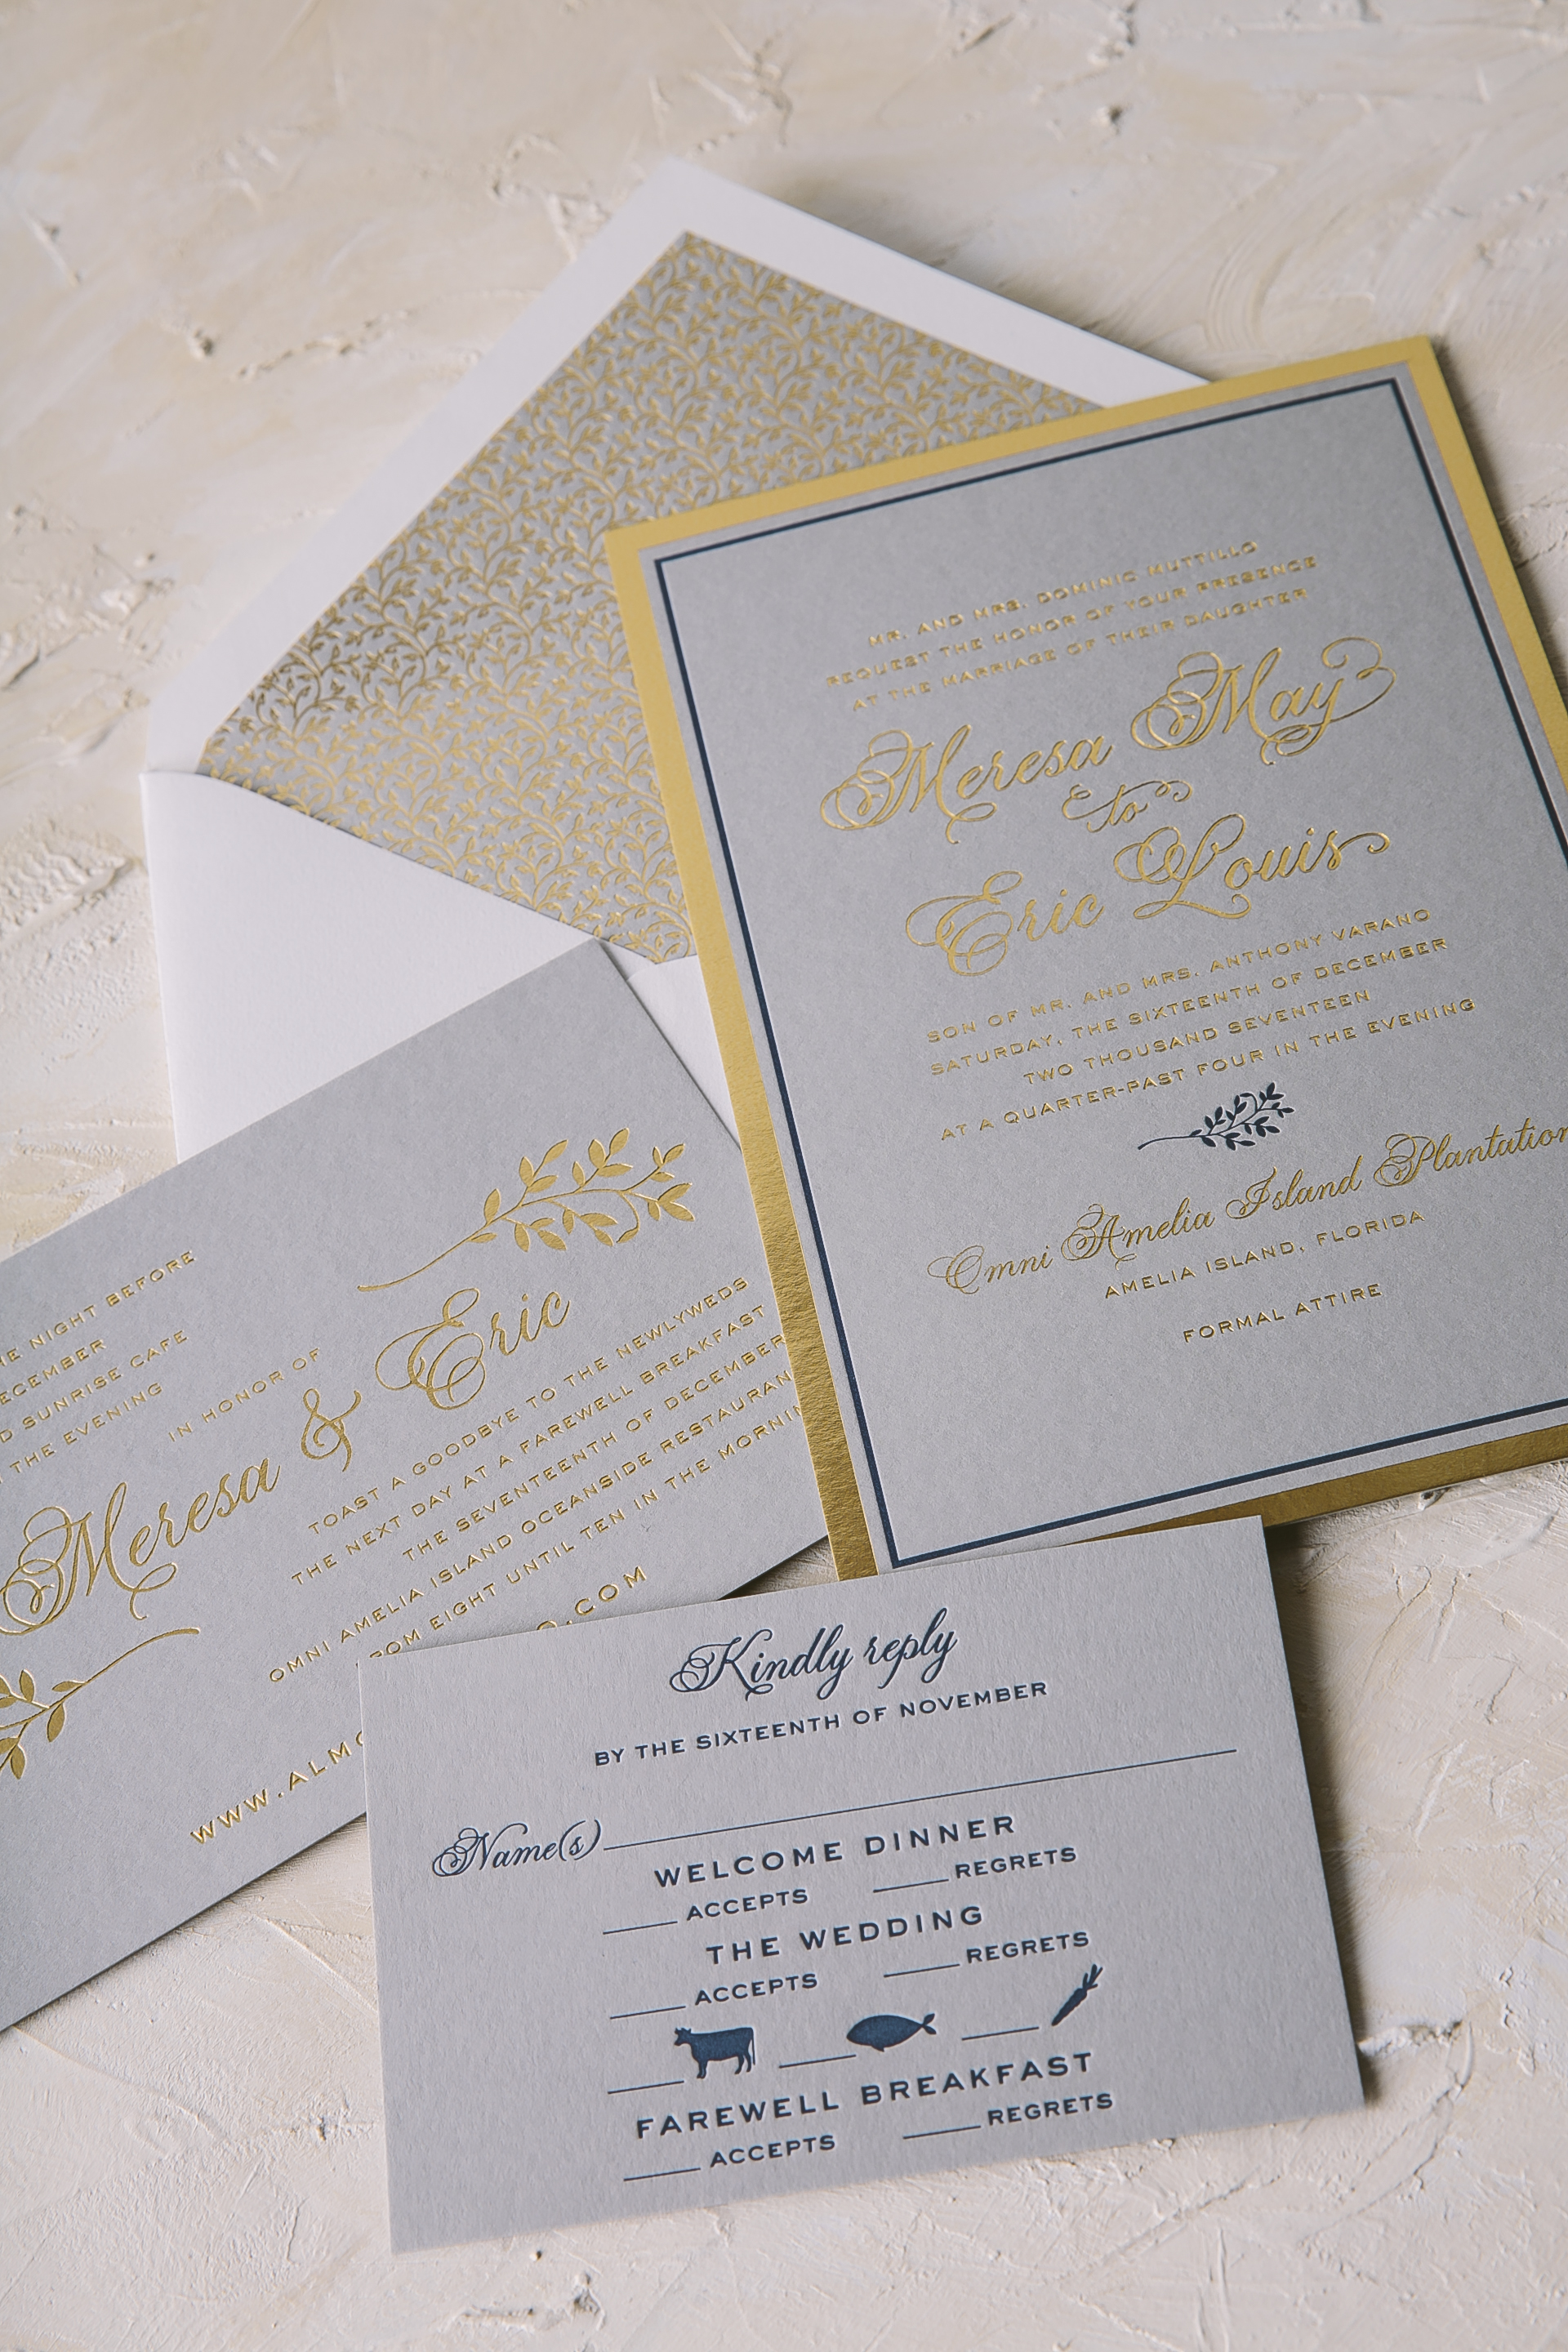 Polished foil stamped wedding invitations from Smock